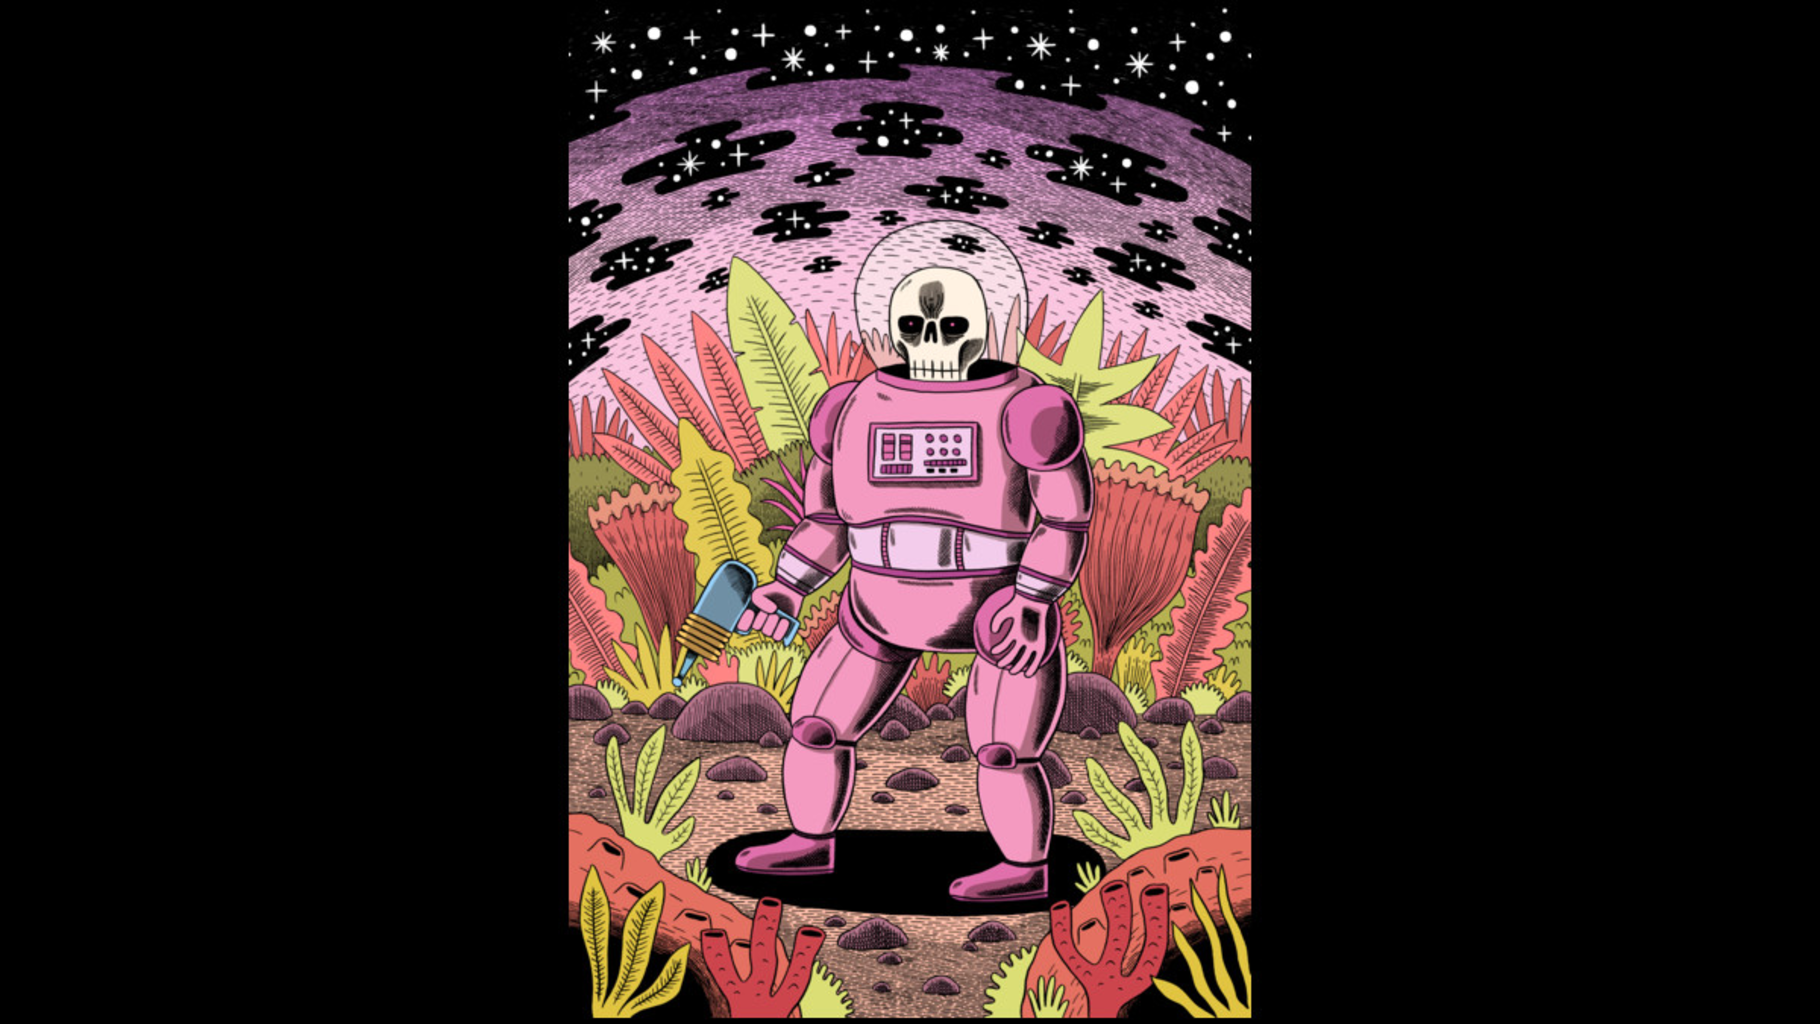 Design by Humans: Dead Spaceman